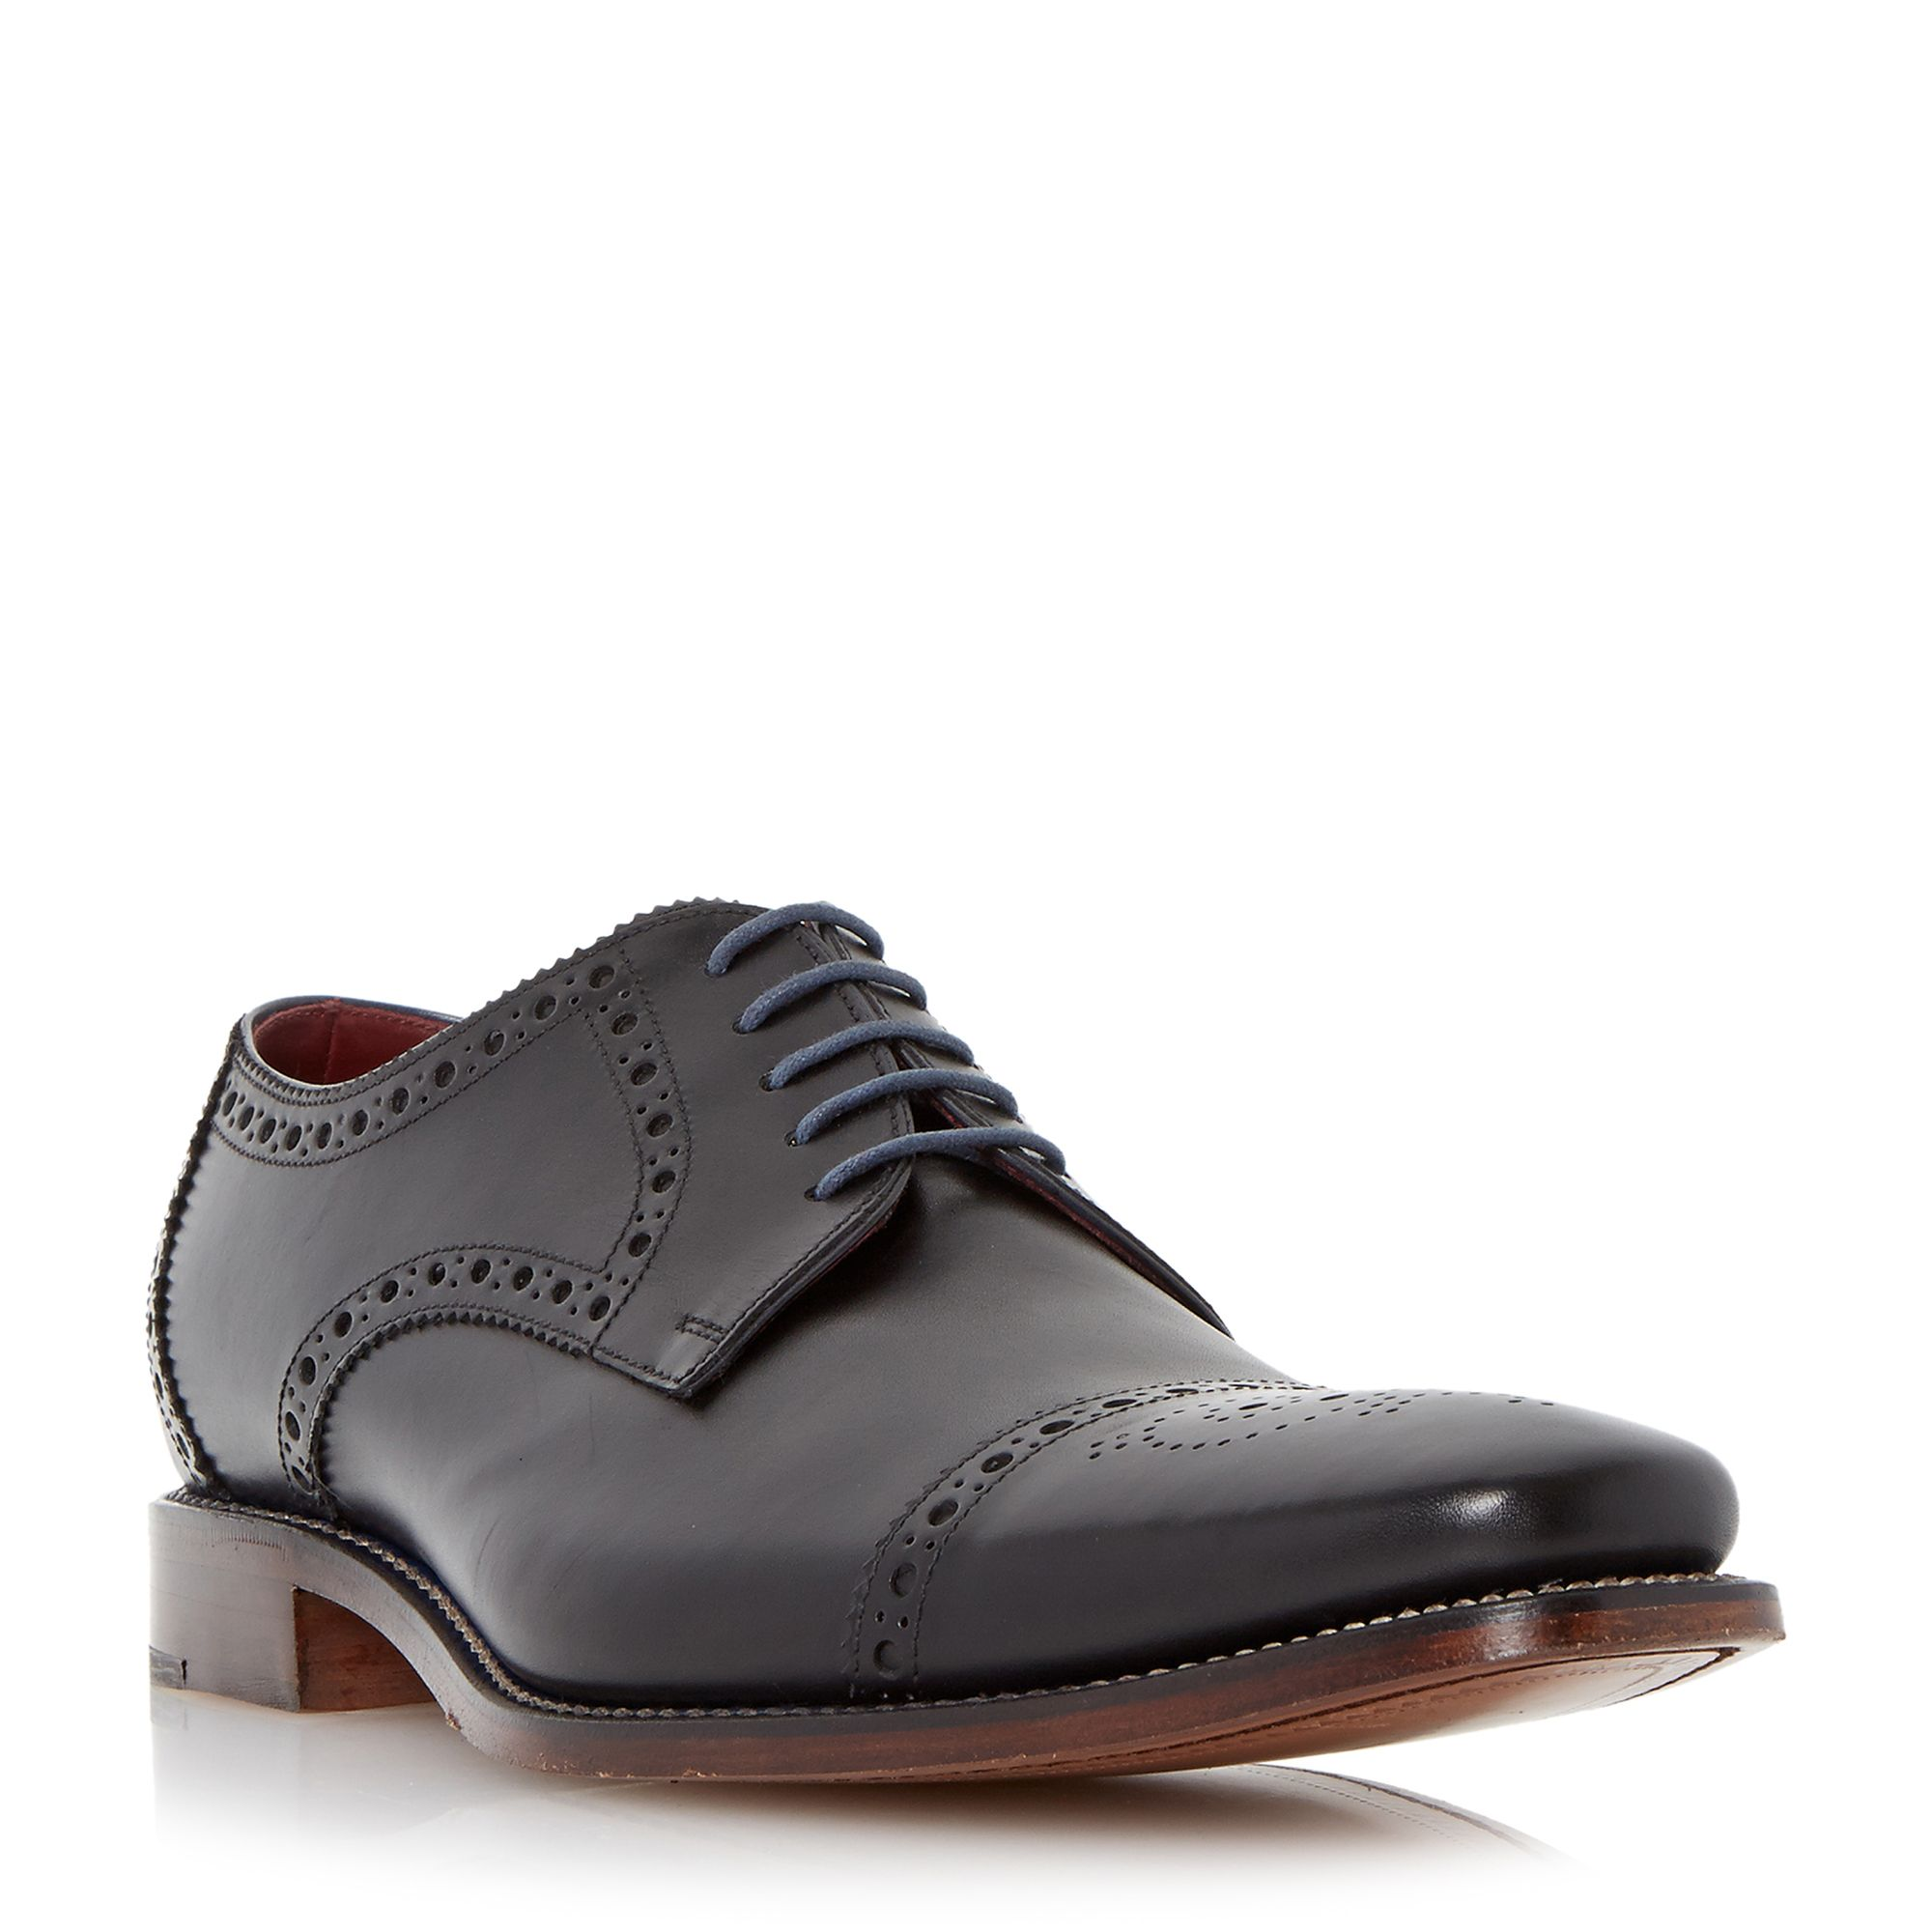 Cheapest Loake Shoes Uk